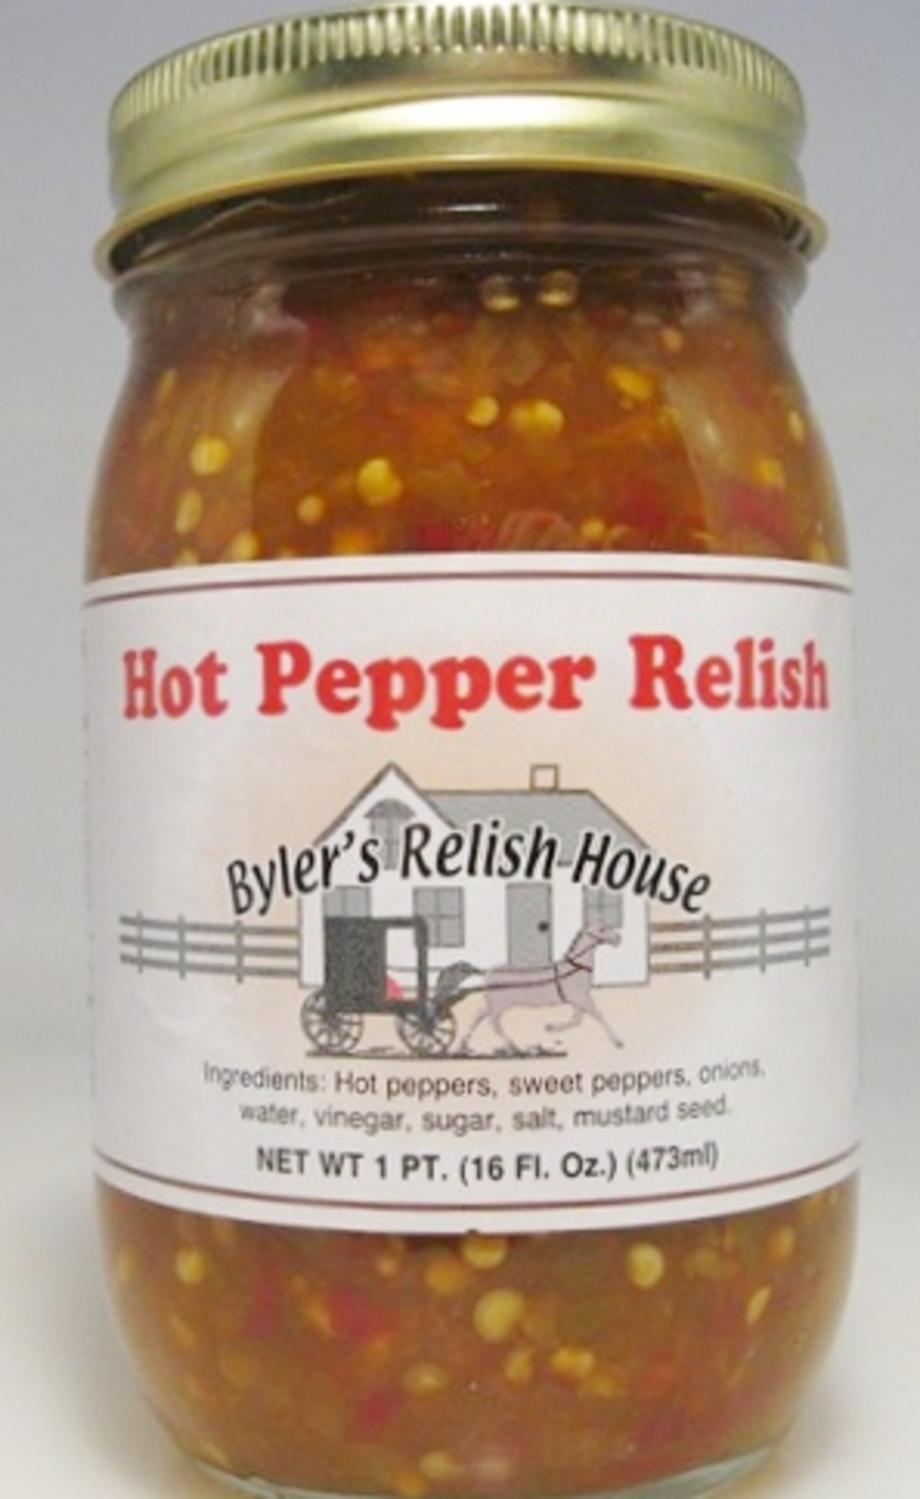 Byler's Relish House Homemade Amish Country Hot Pepper Relish 16 oz. by Byler's Relish House